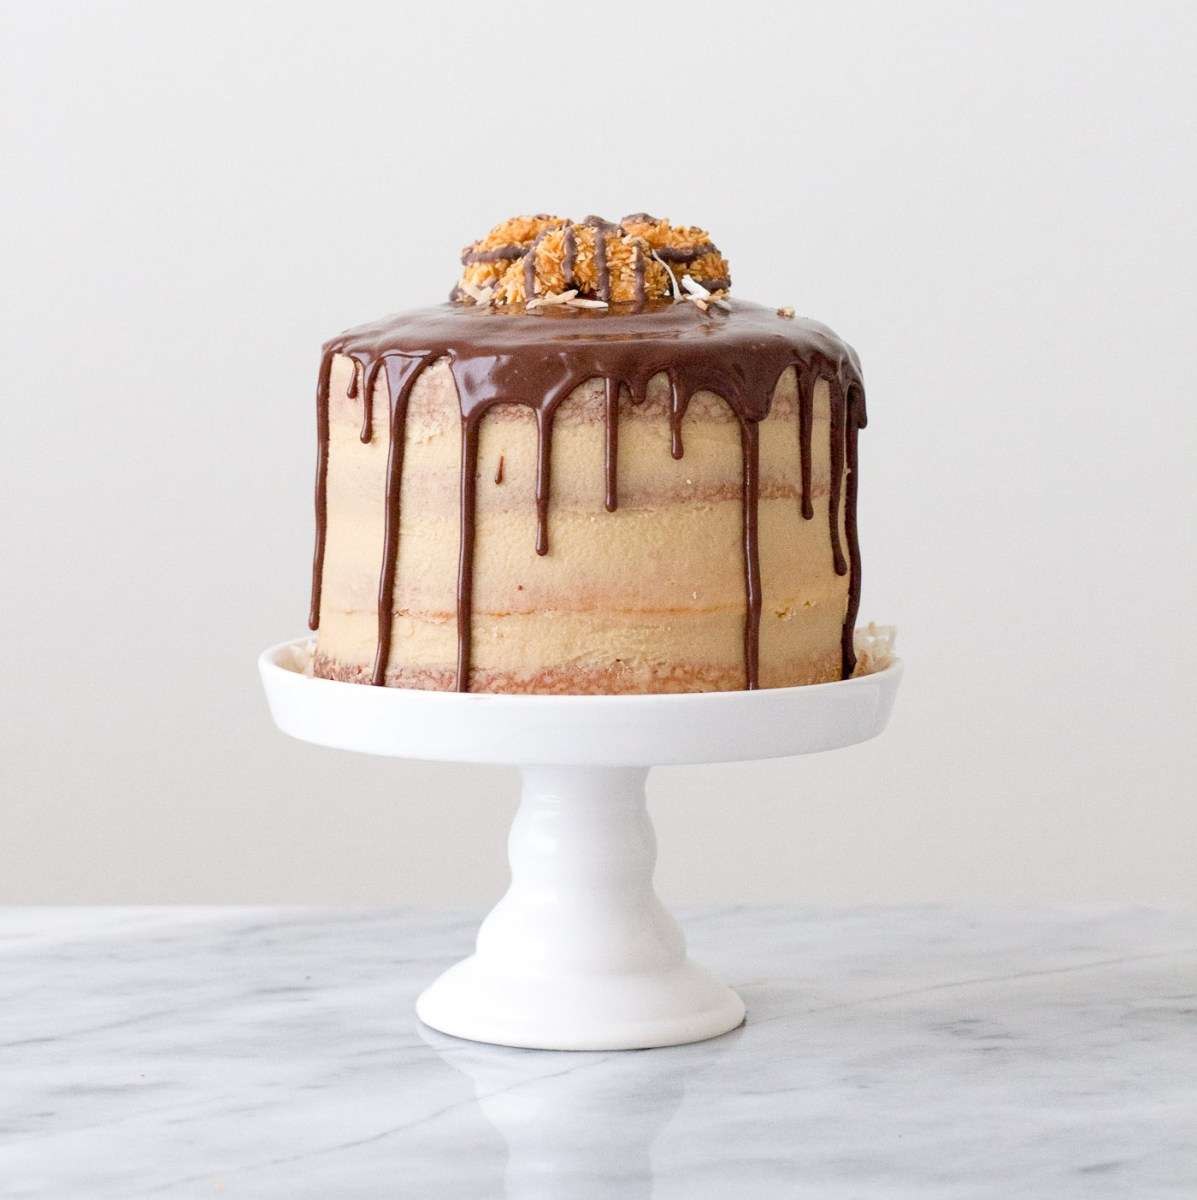 Samoas-Inspired Layer Cake with Chocolate Drips